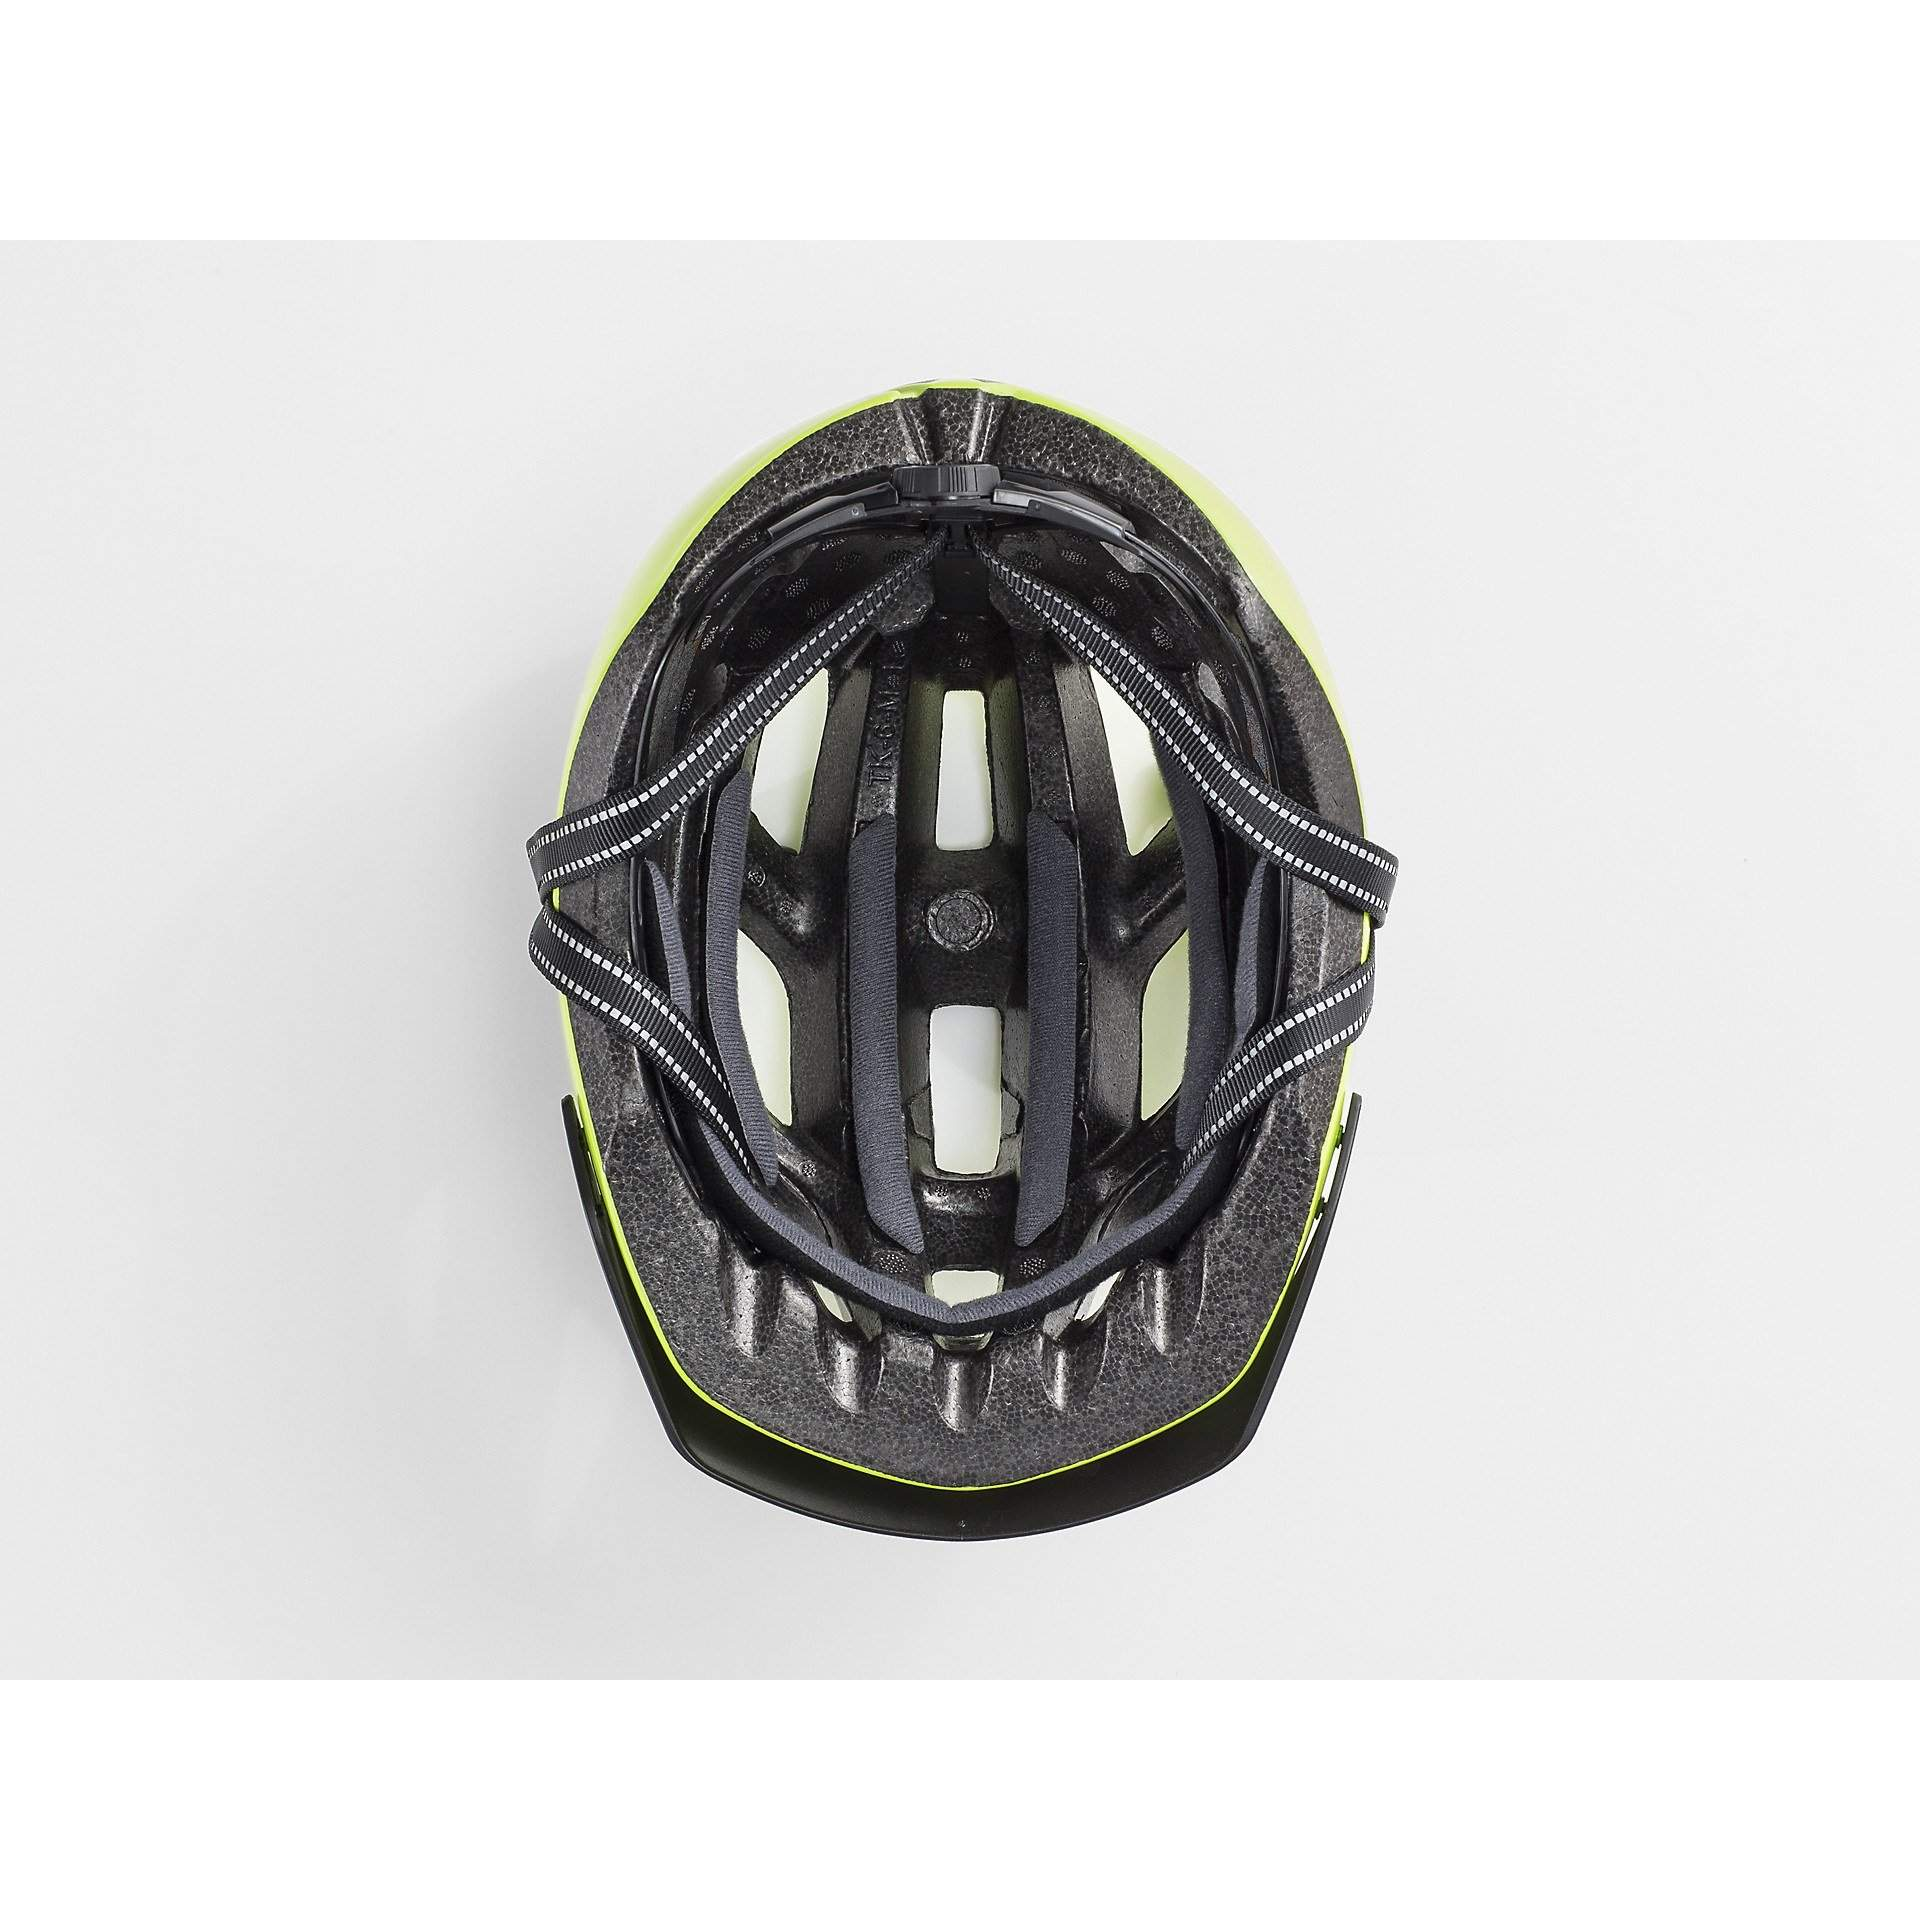 KASK ROWEROWY BONTRAGER SOLSTICE VISIBLE YELLOW W ŚRODKU